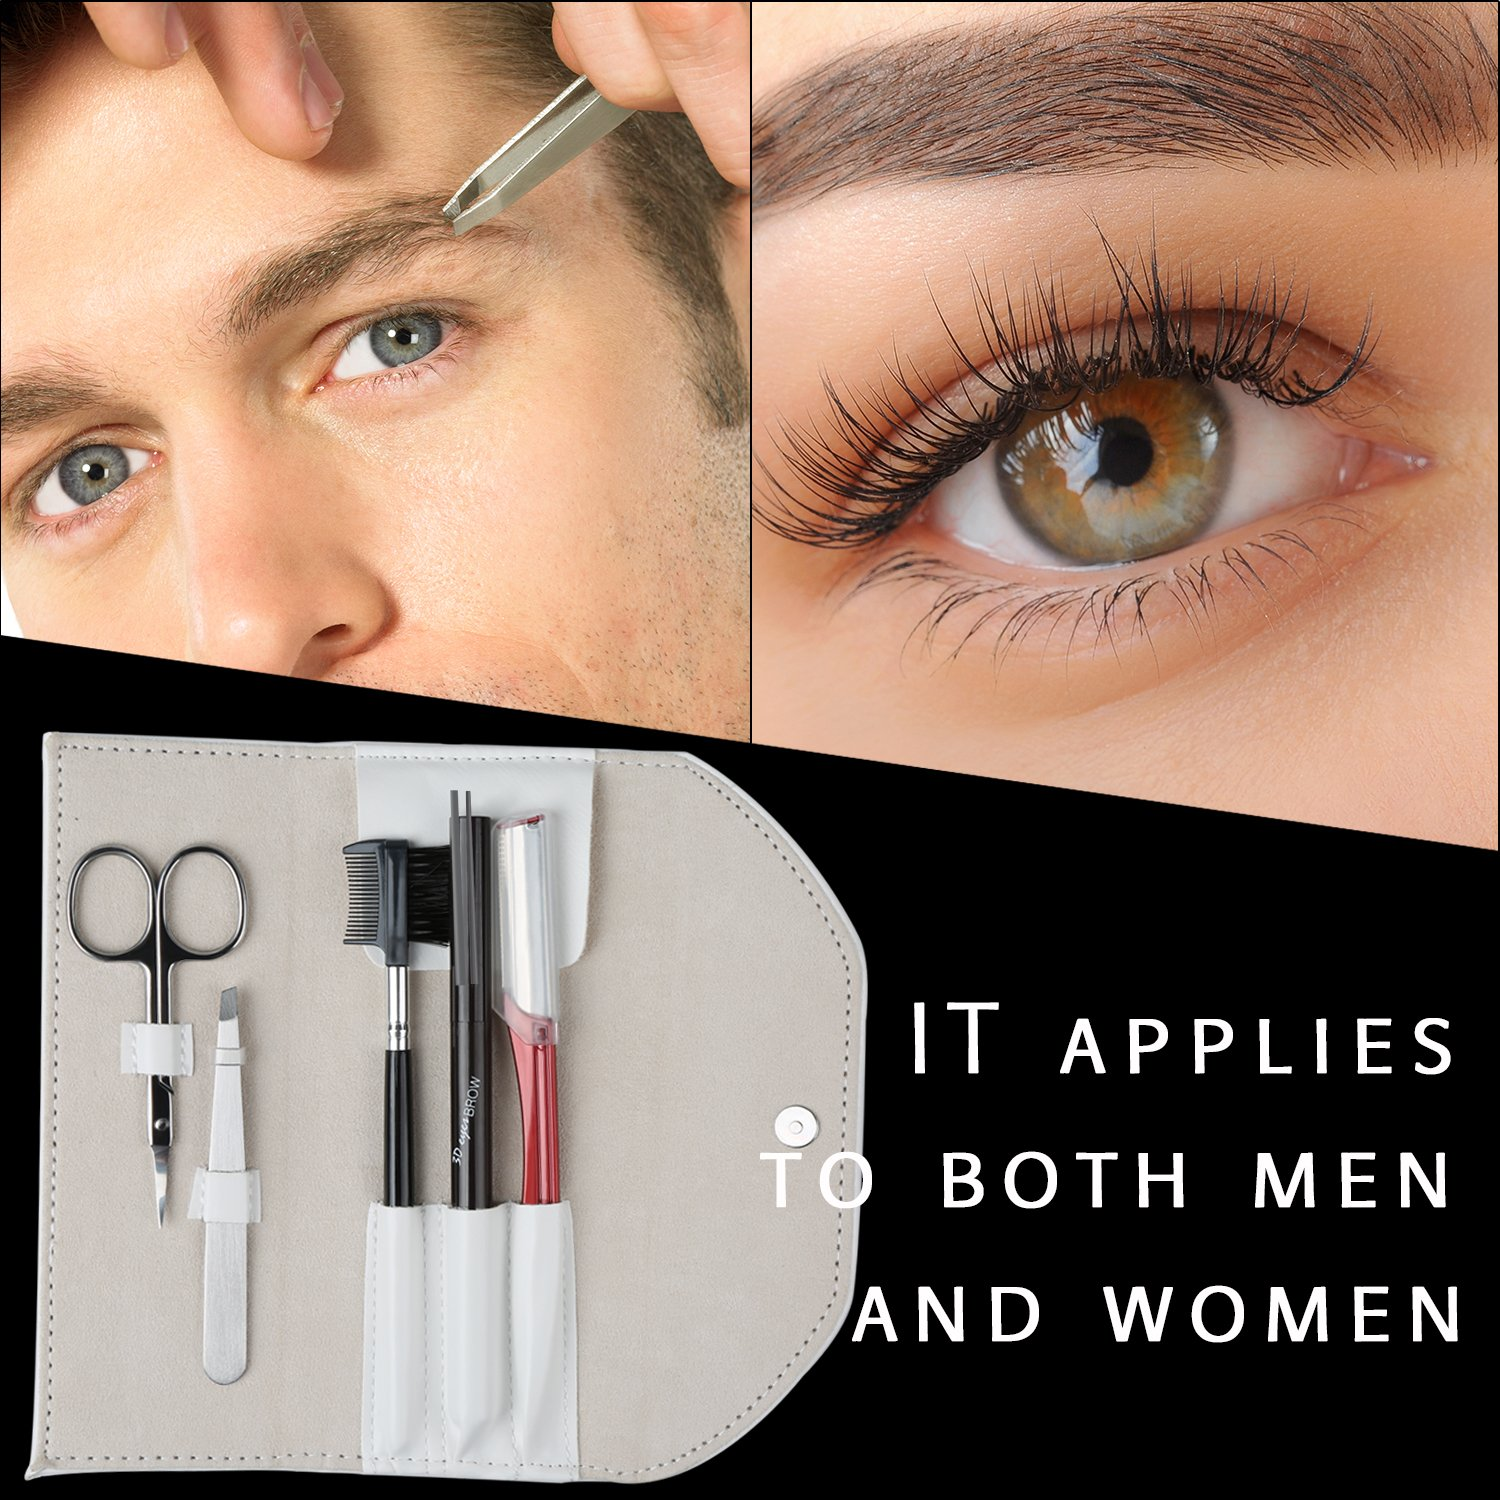 5 In 1 Eyebrow Kit for Man and Woman BIFY Unisex Eyebrow Grooming Gift Eyebrow Care Set of Eyebrow Scissors Eyebrow Sharper Eyebrow Pencil Eyebrow Tweezer and Eyebrow Brush/Comb with white Travel Case